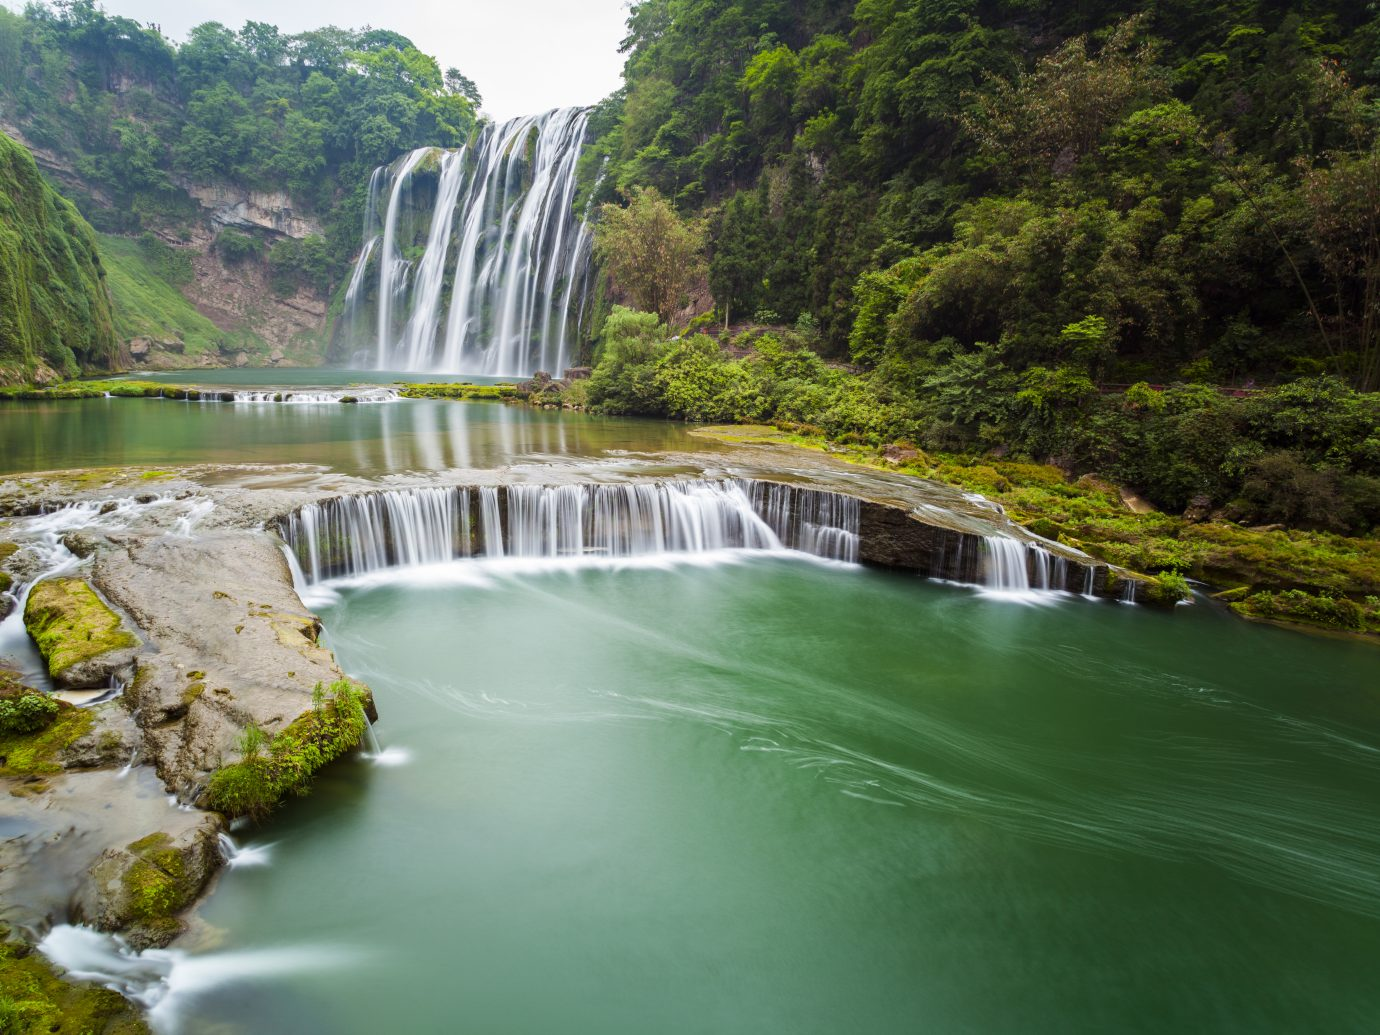 Huang guoshu Waterfall, guizhou, China